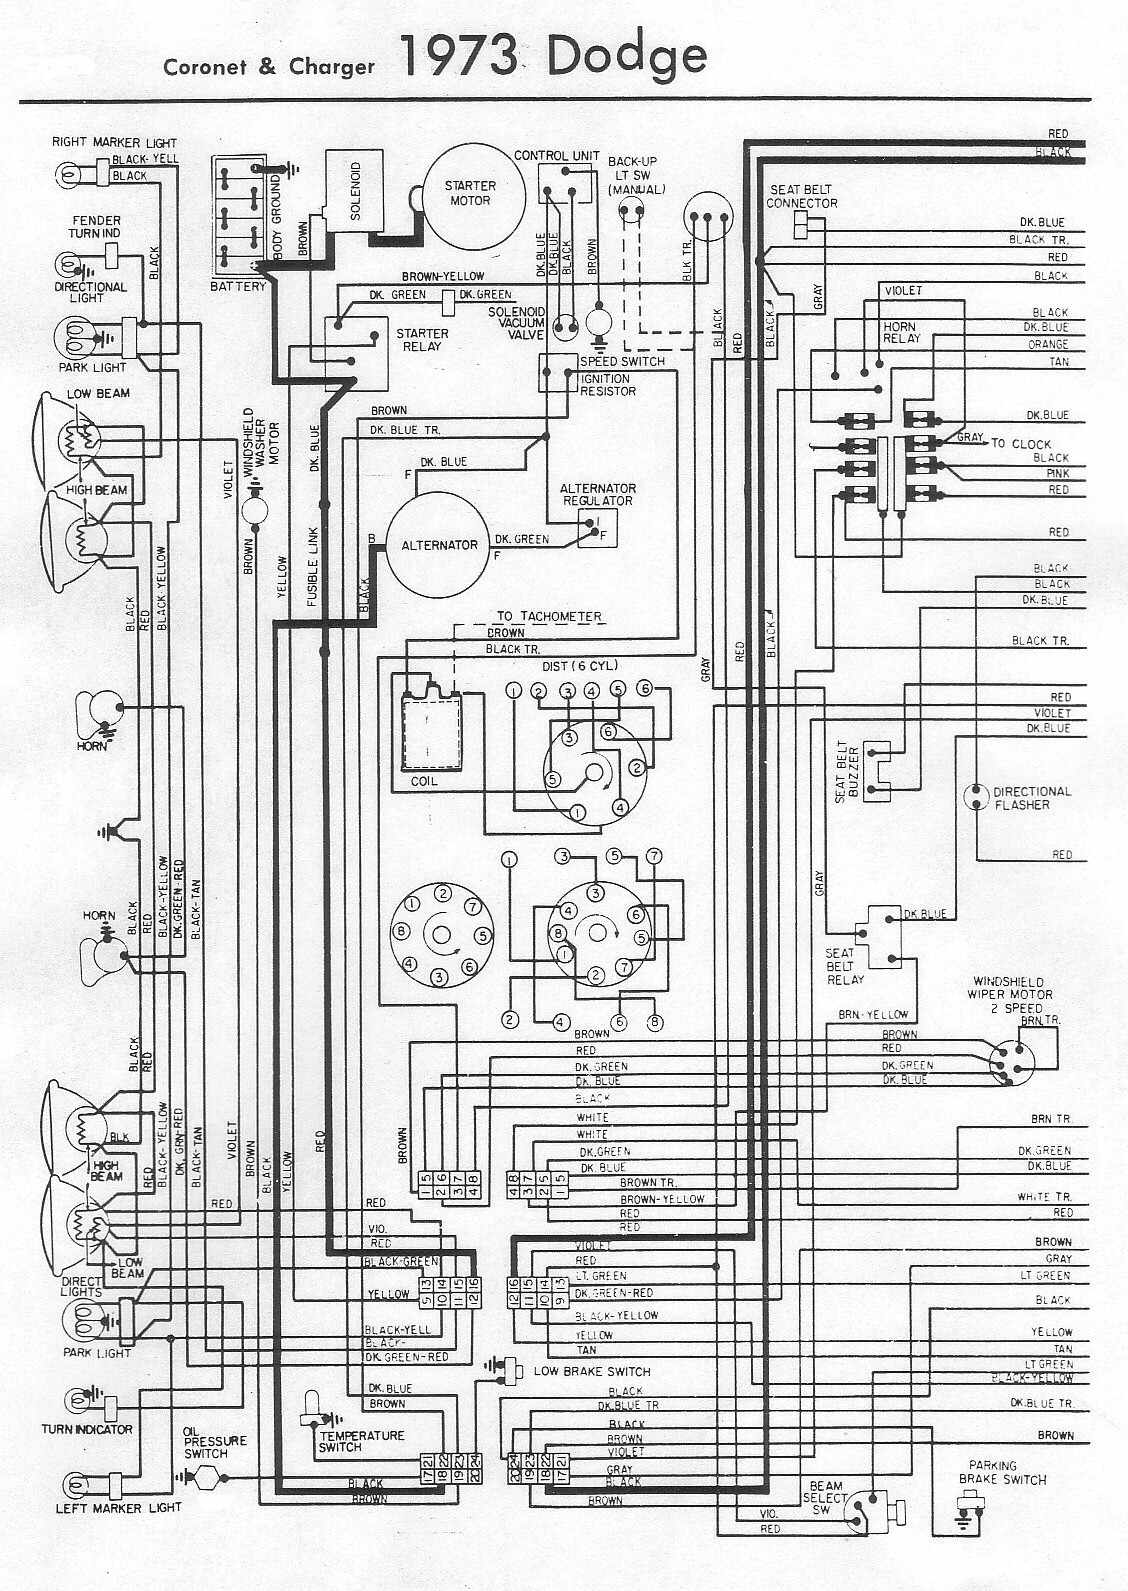 electrical wiring diagram of 1973 dodge coronet and charger?t=1494185039 dodge caravan electrical diagram user manual 28 images dodge Wiring Diagram for 1974 Challenger at mifinder.co